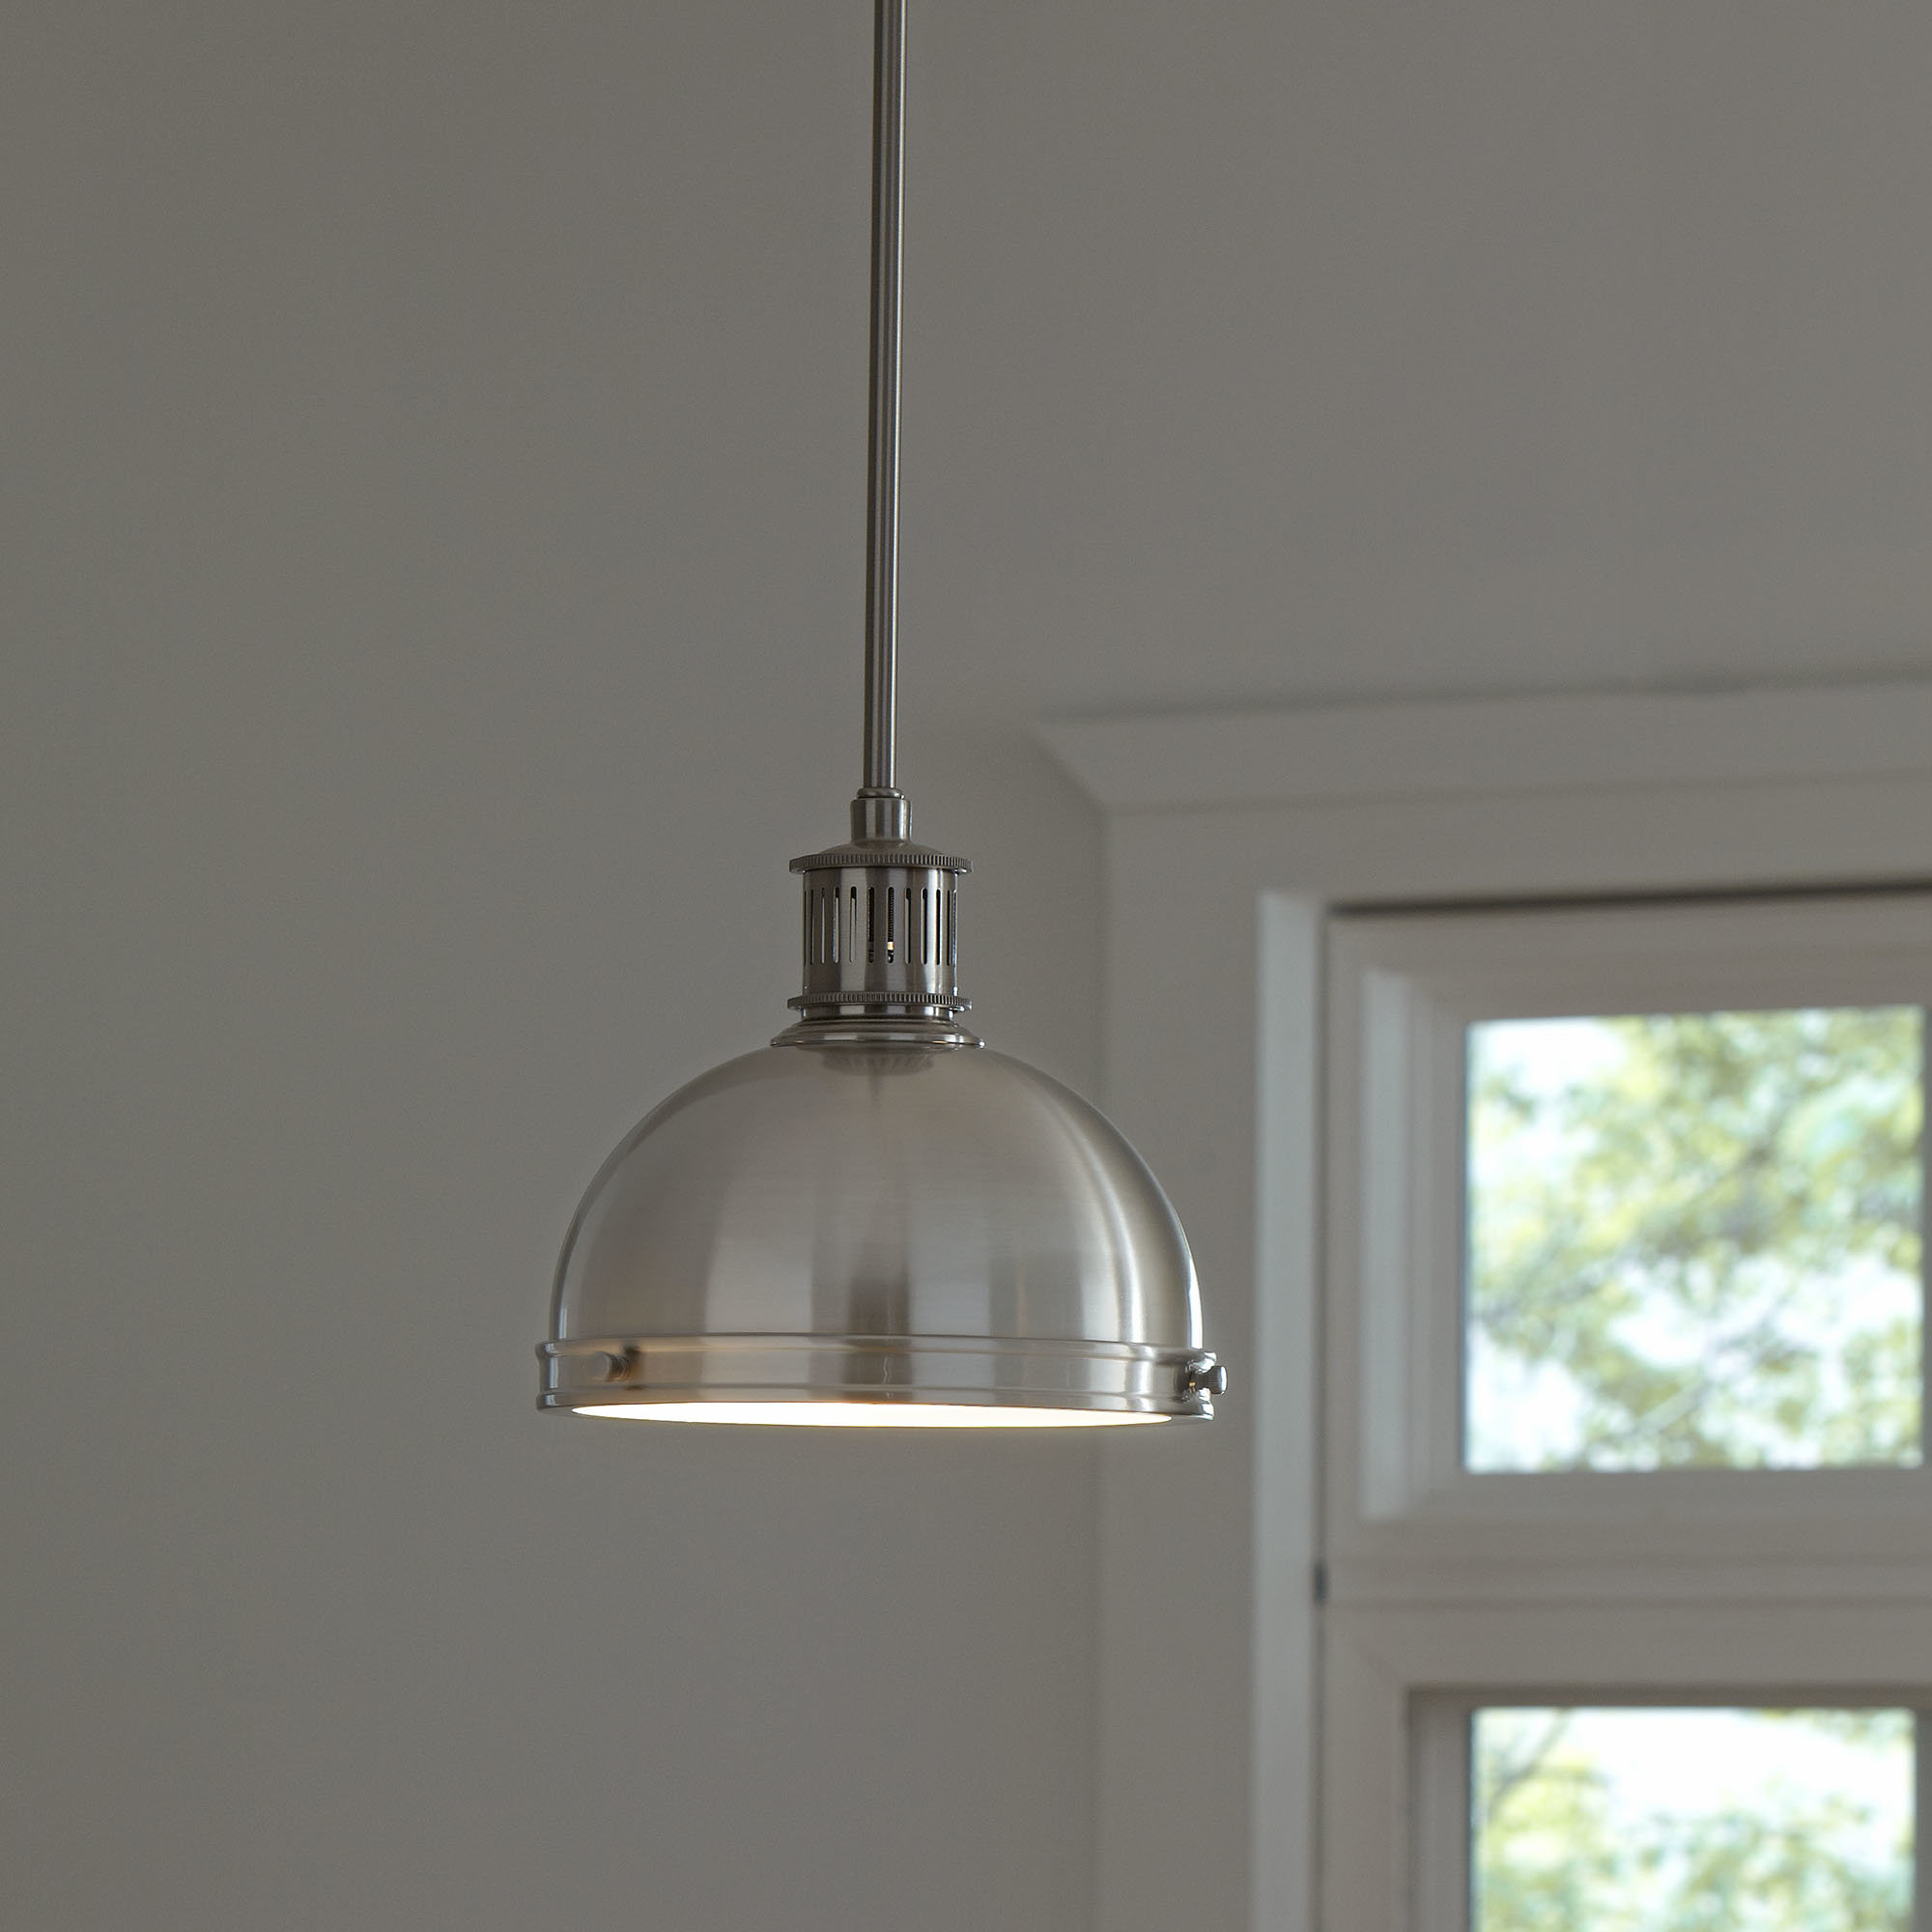 2019 Ninette 1-Light Dome Pendants with regard to Ninette 1-Light Dome Pendant